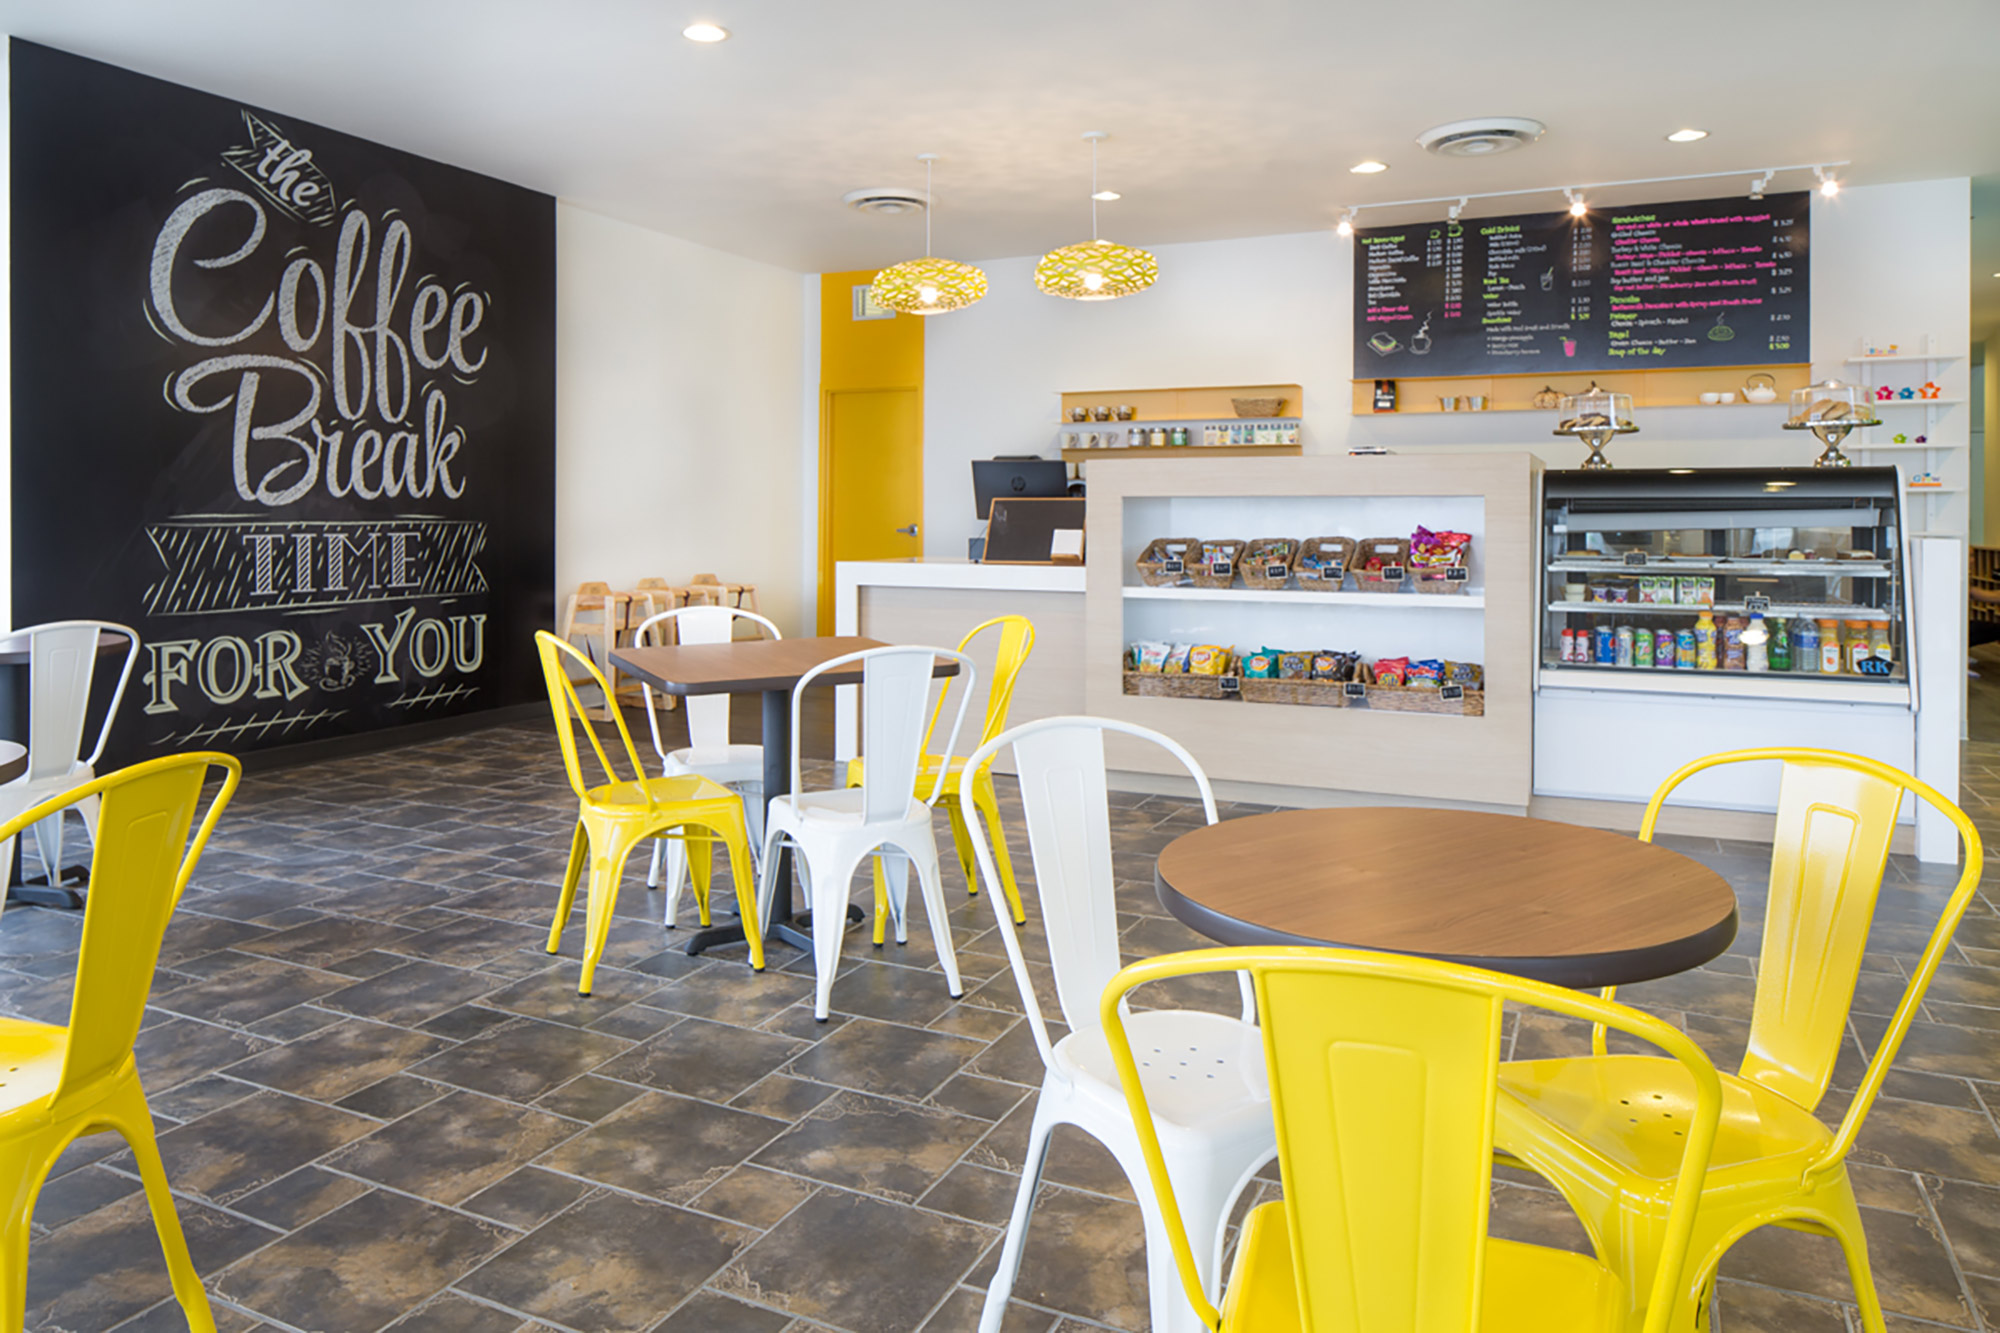 interior-design-indoor-play-facility-cafe-seating.jpg